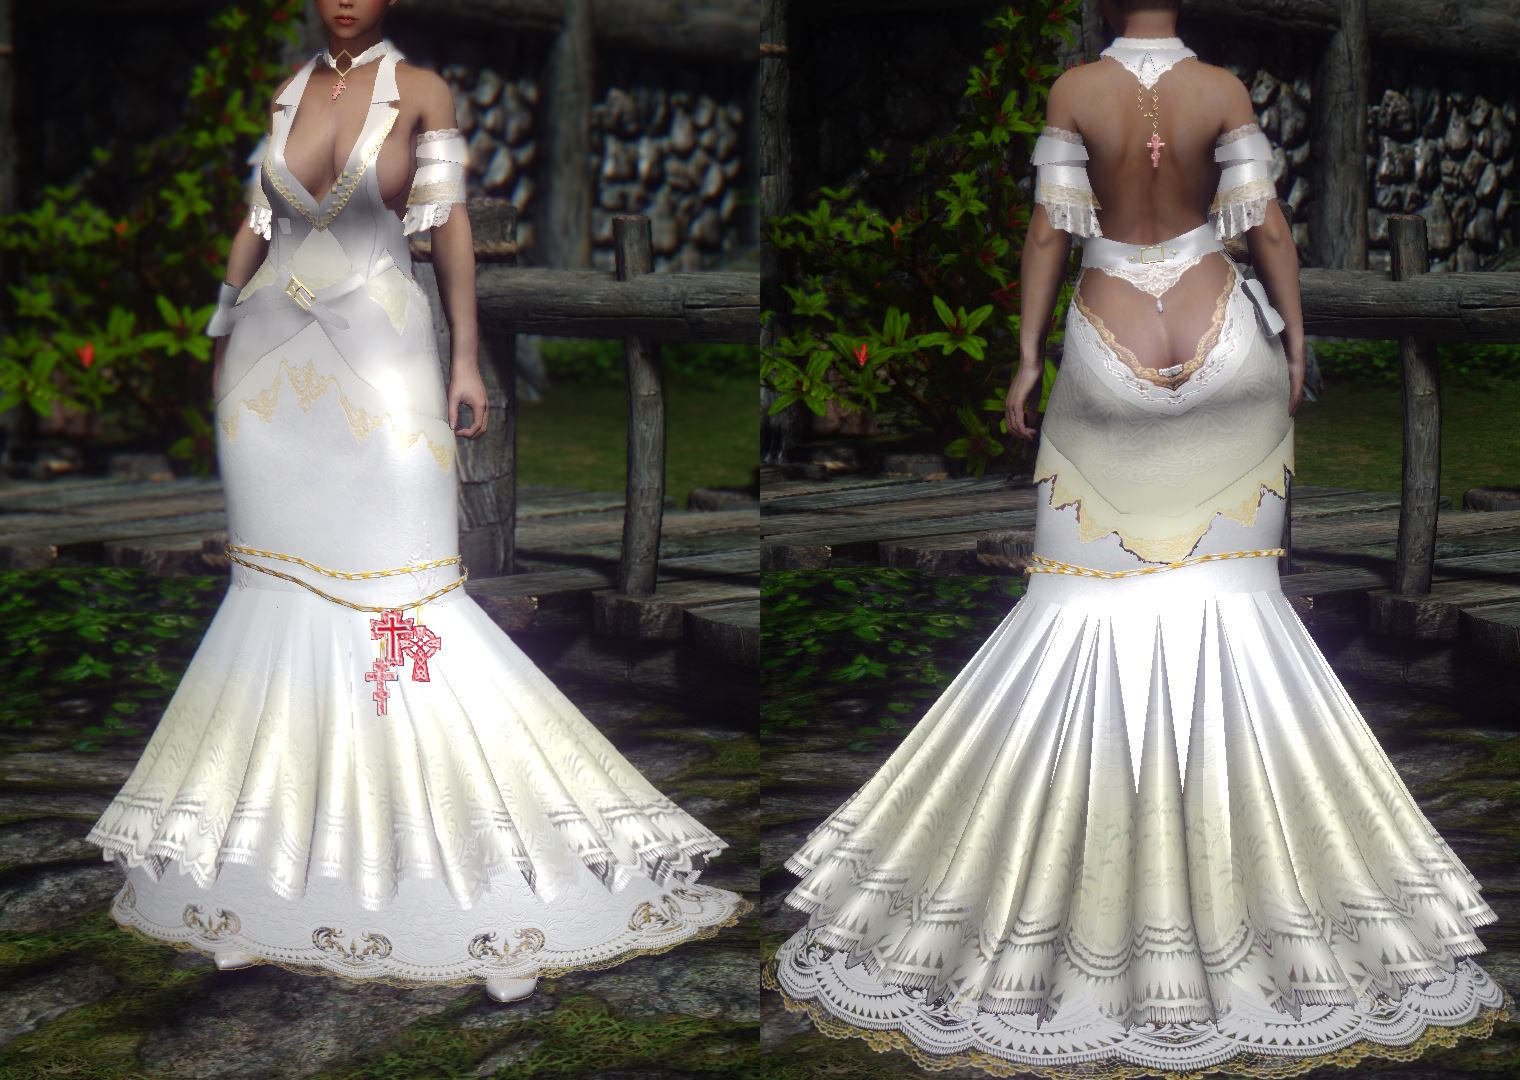 Skyrim Wedding Dress.Anyone Have This Mod Request Find Skyrim Non Adult Mods